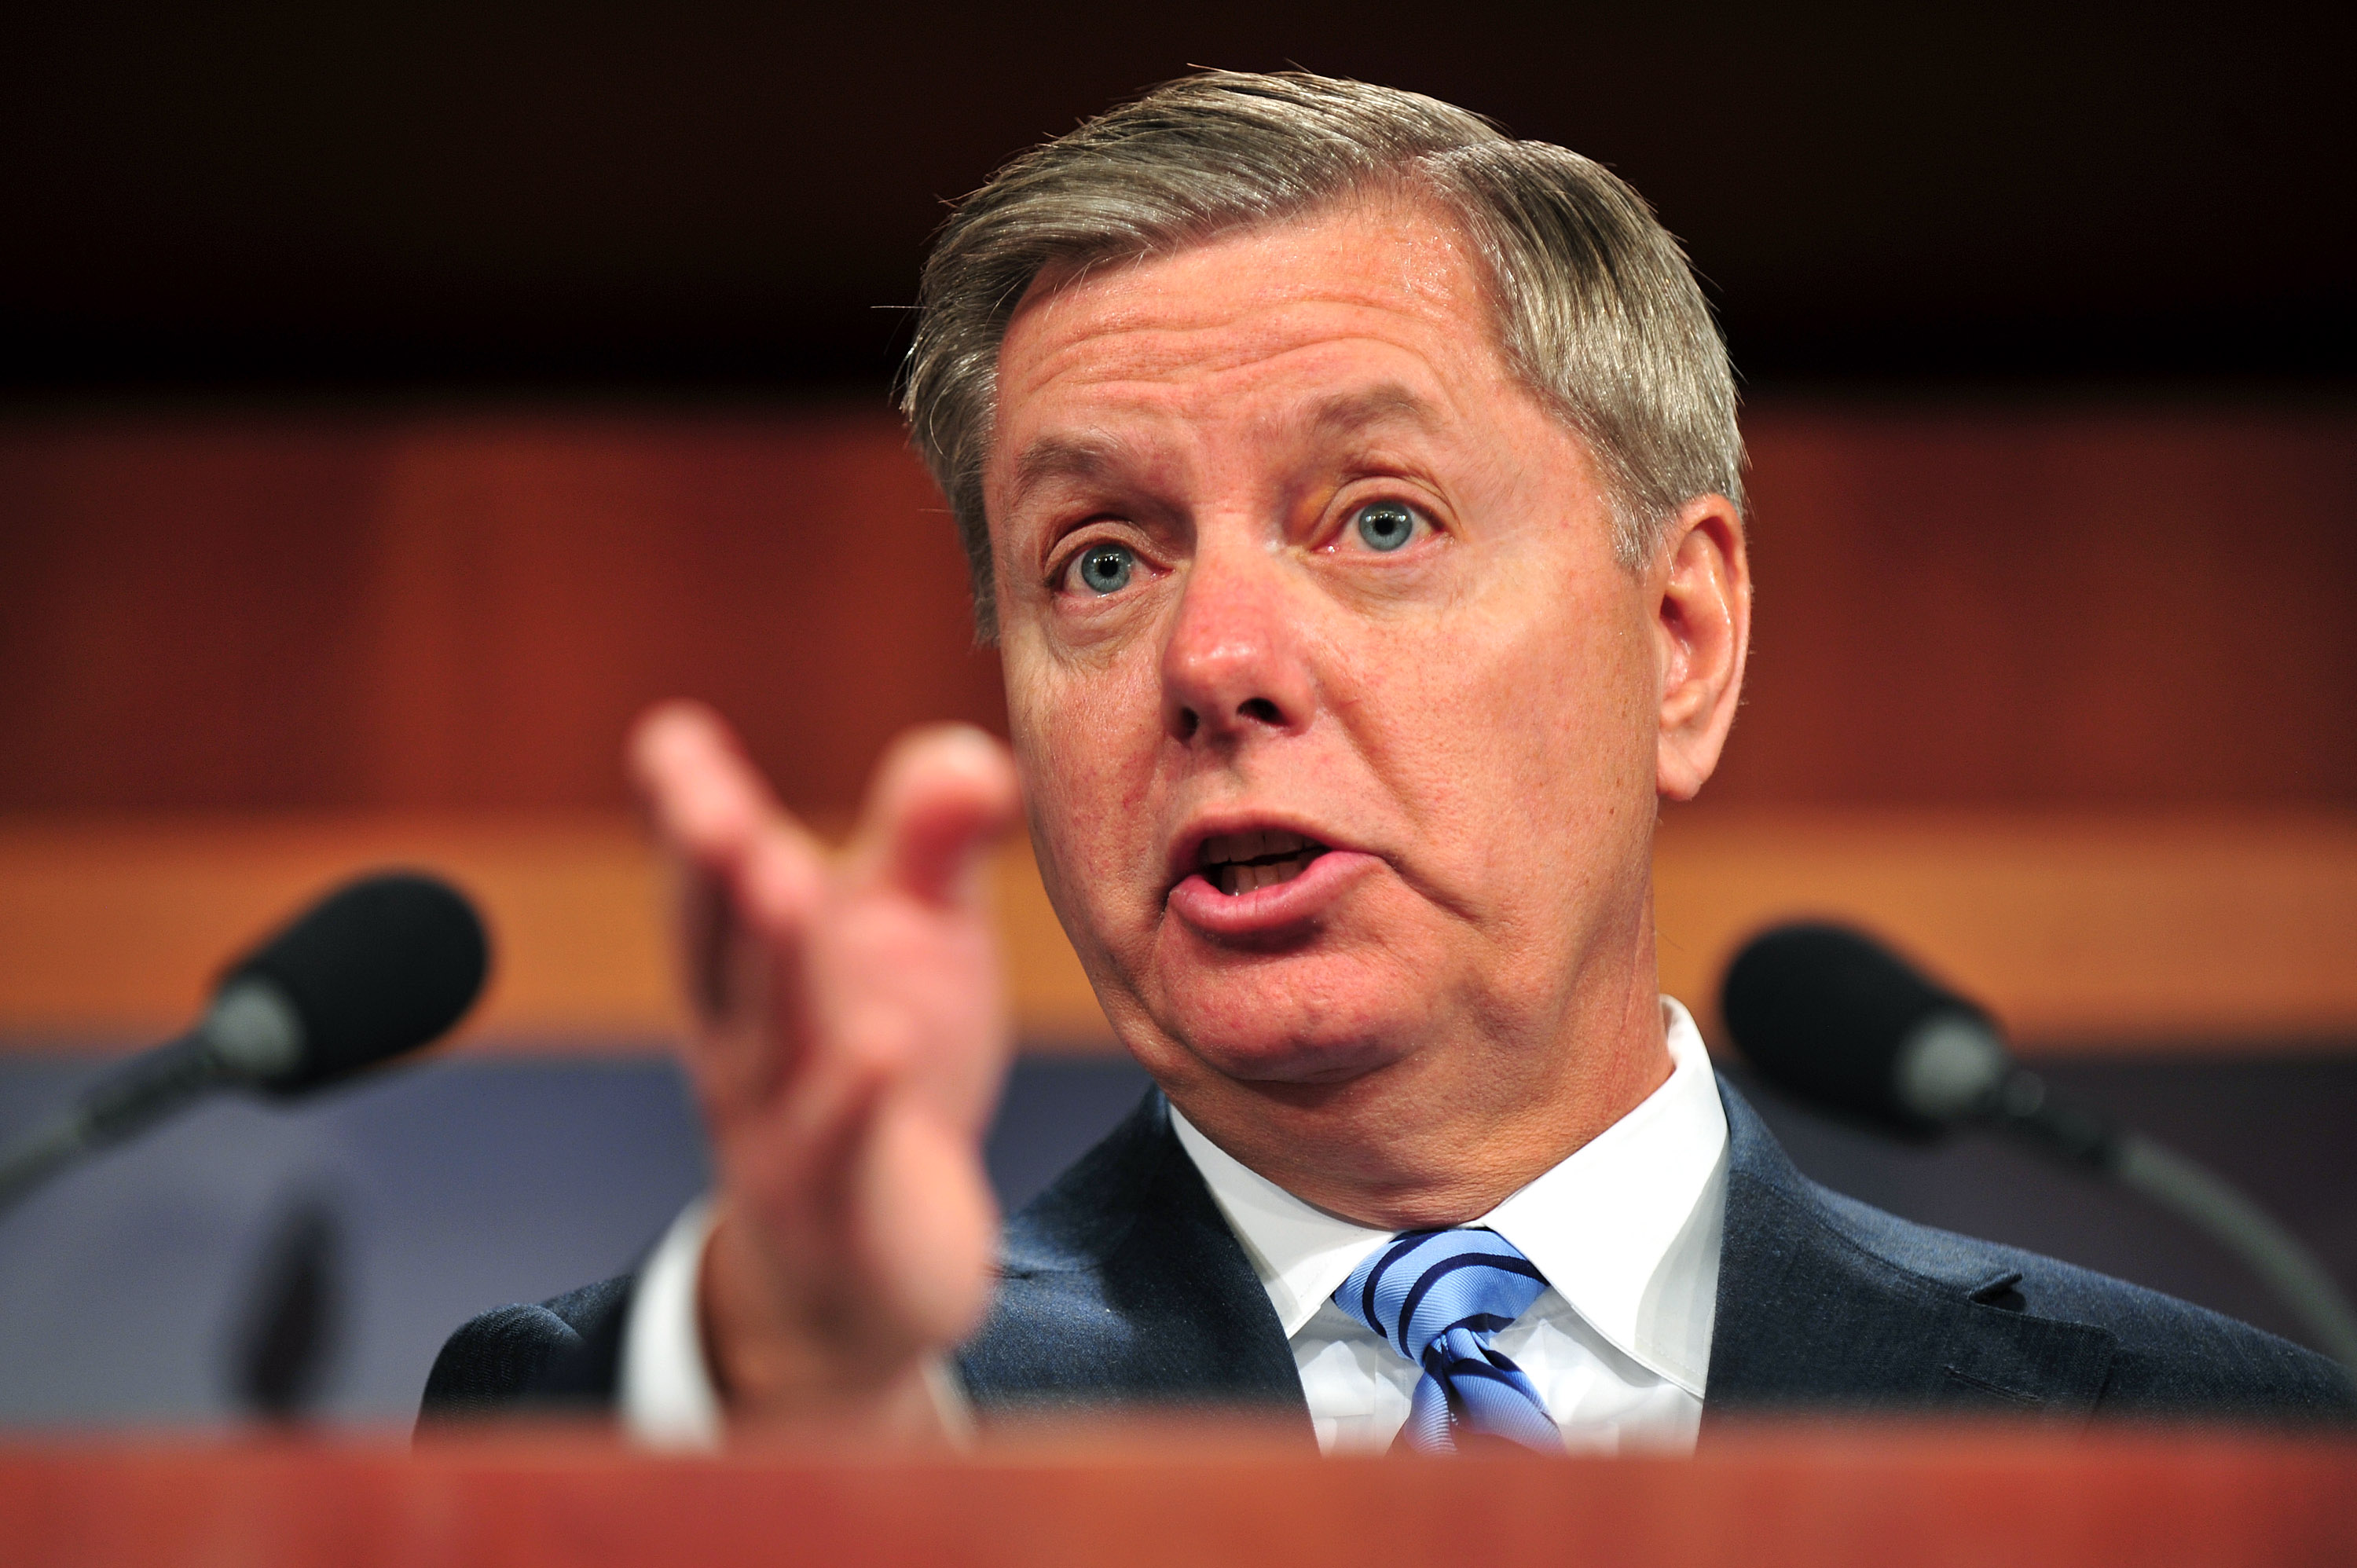 Sen. Lindsey Graham speaks on repealing the health care law in Washington